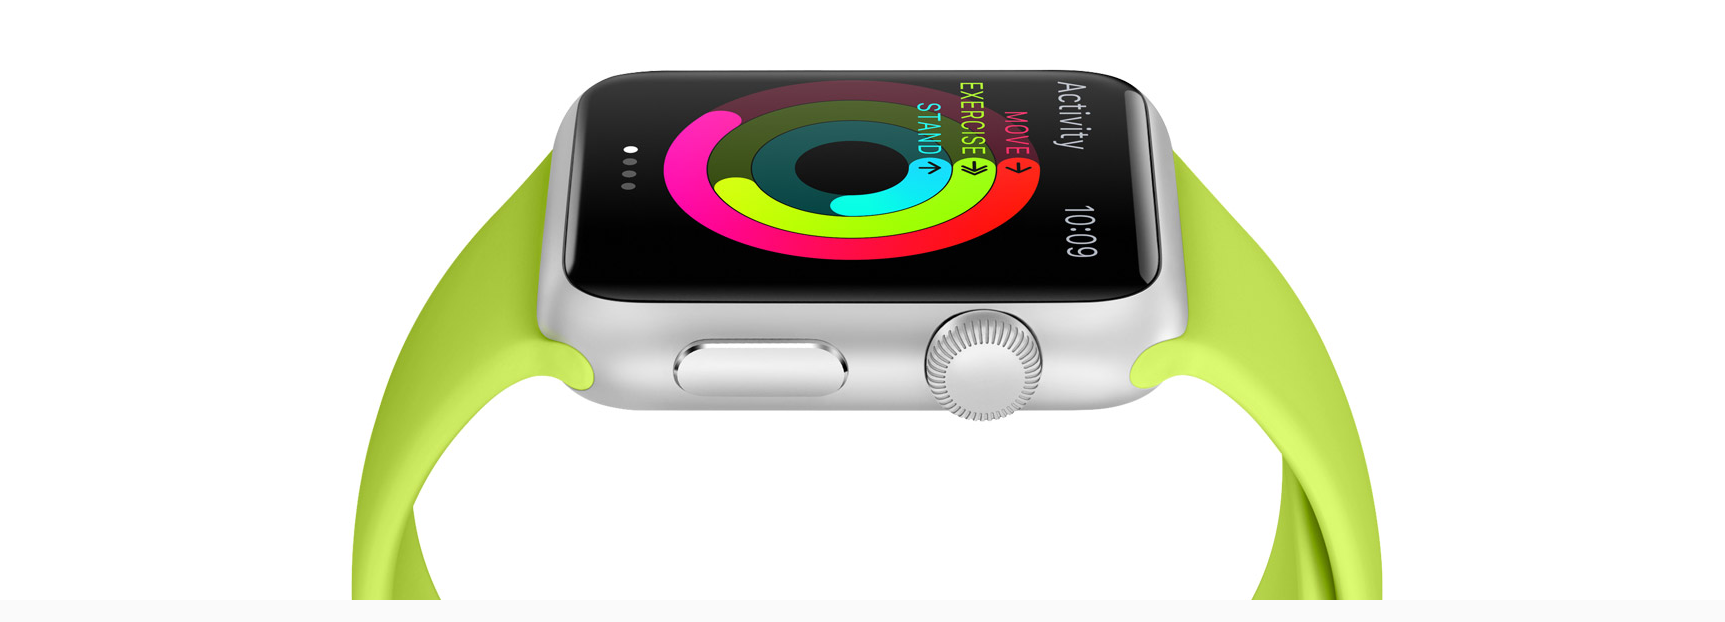 Guest Post: 5 Most Important Things to Consider in Apple Watch App Development